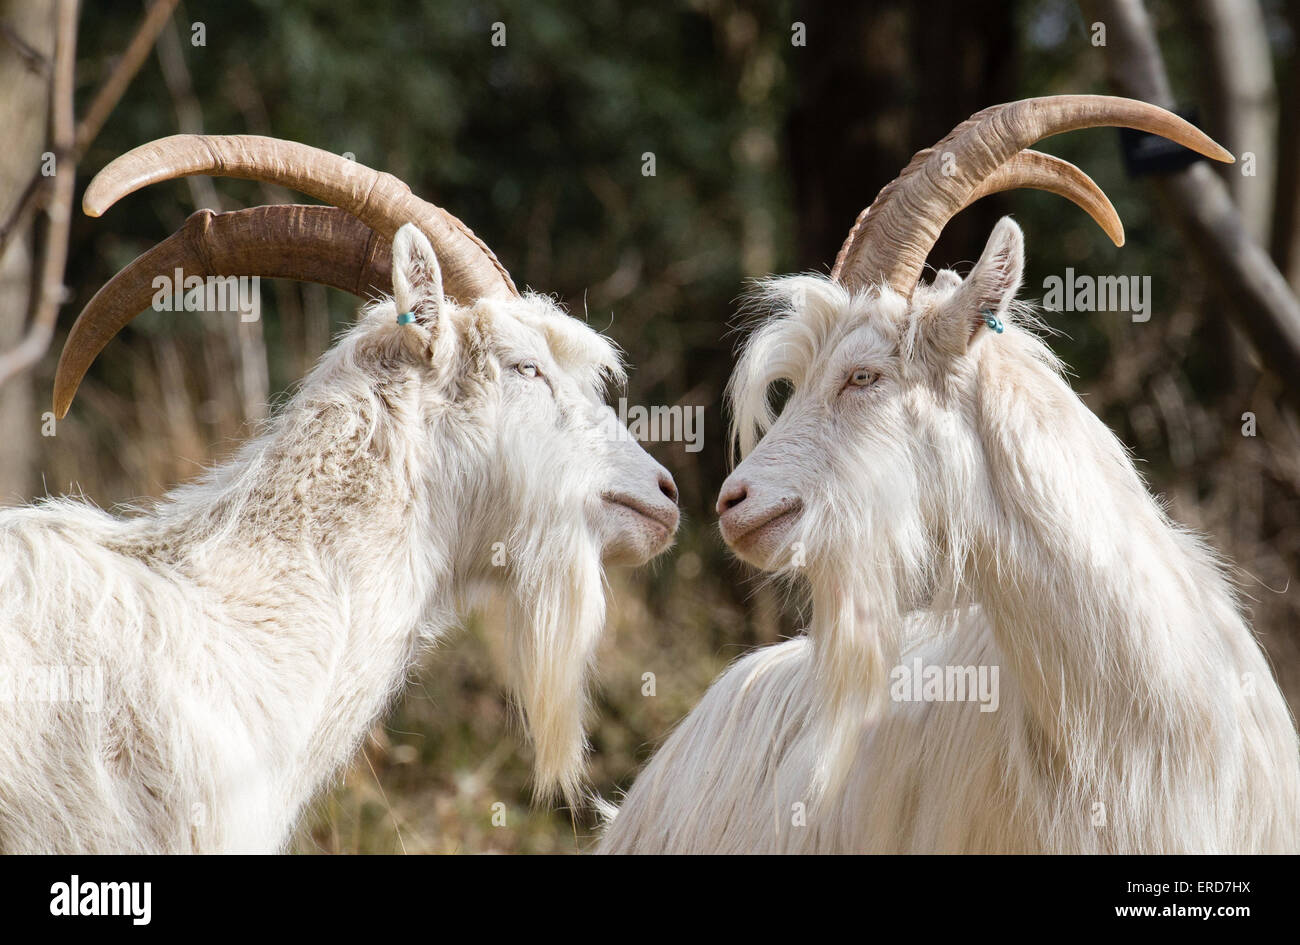 White billy goats - members of the small flock used to control vegetation and encourage biodiversity in Avon Gorge - Stock Image